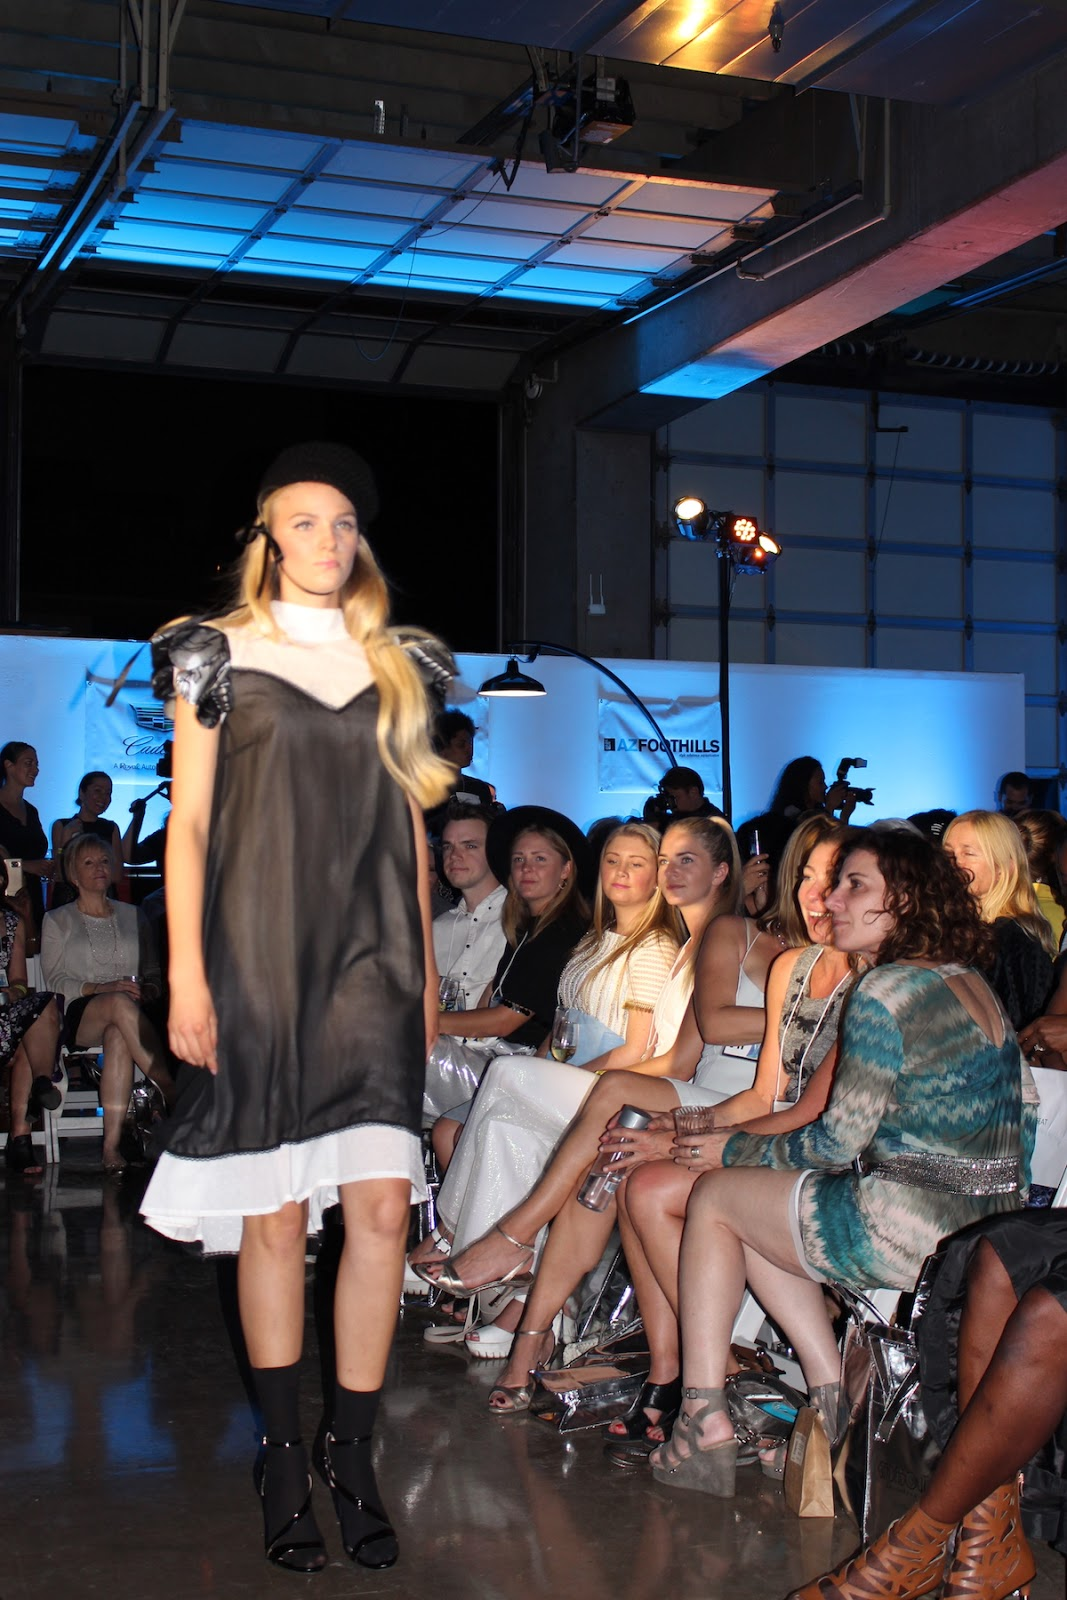 The model is strutting down the runway in a sheer black dress, while wearing a hat similiar to an English guard hat.